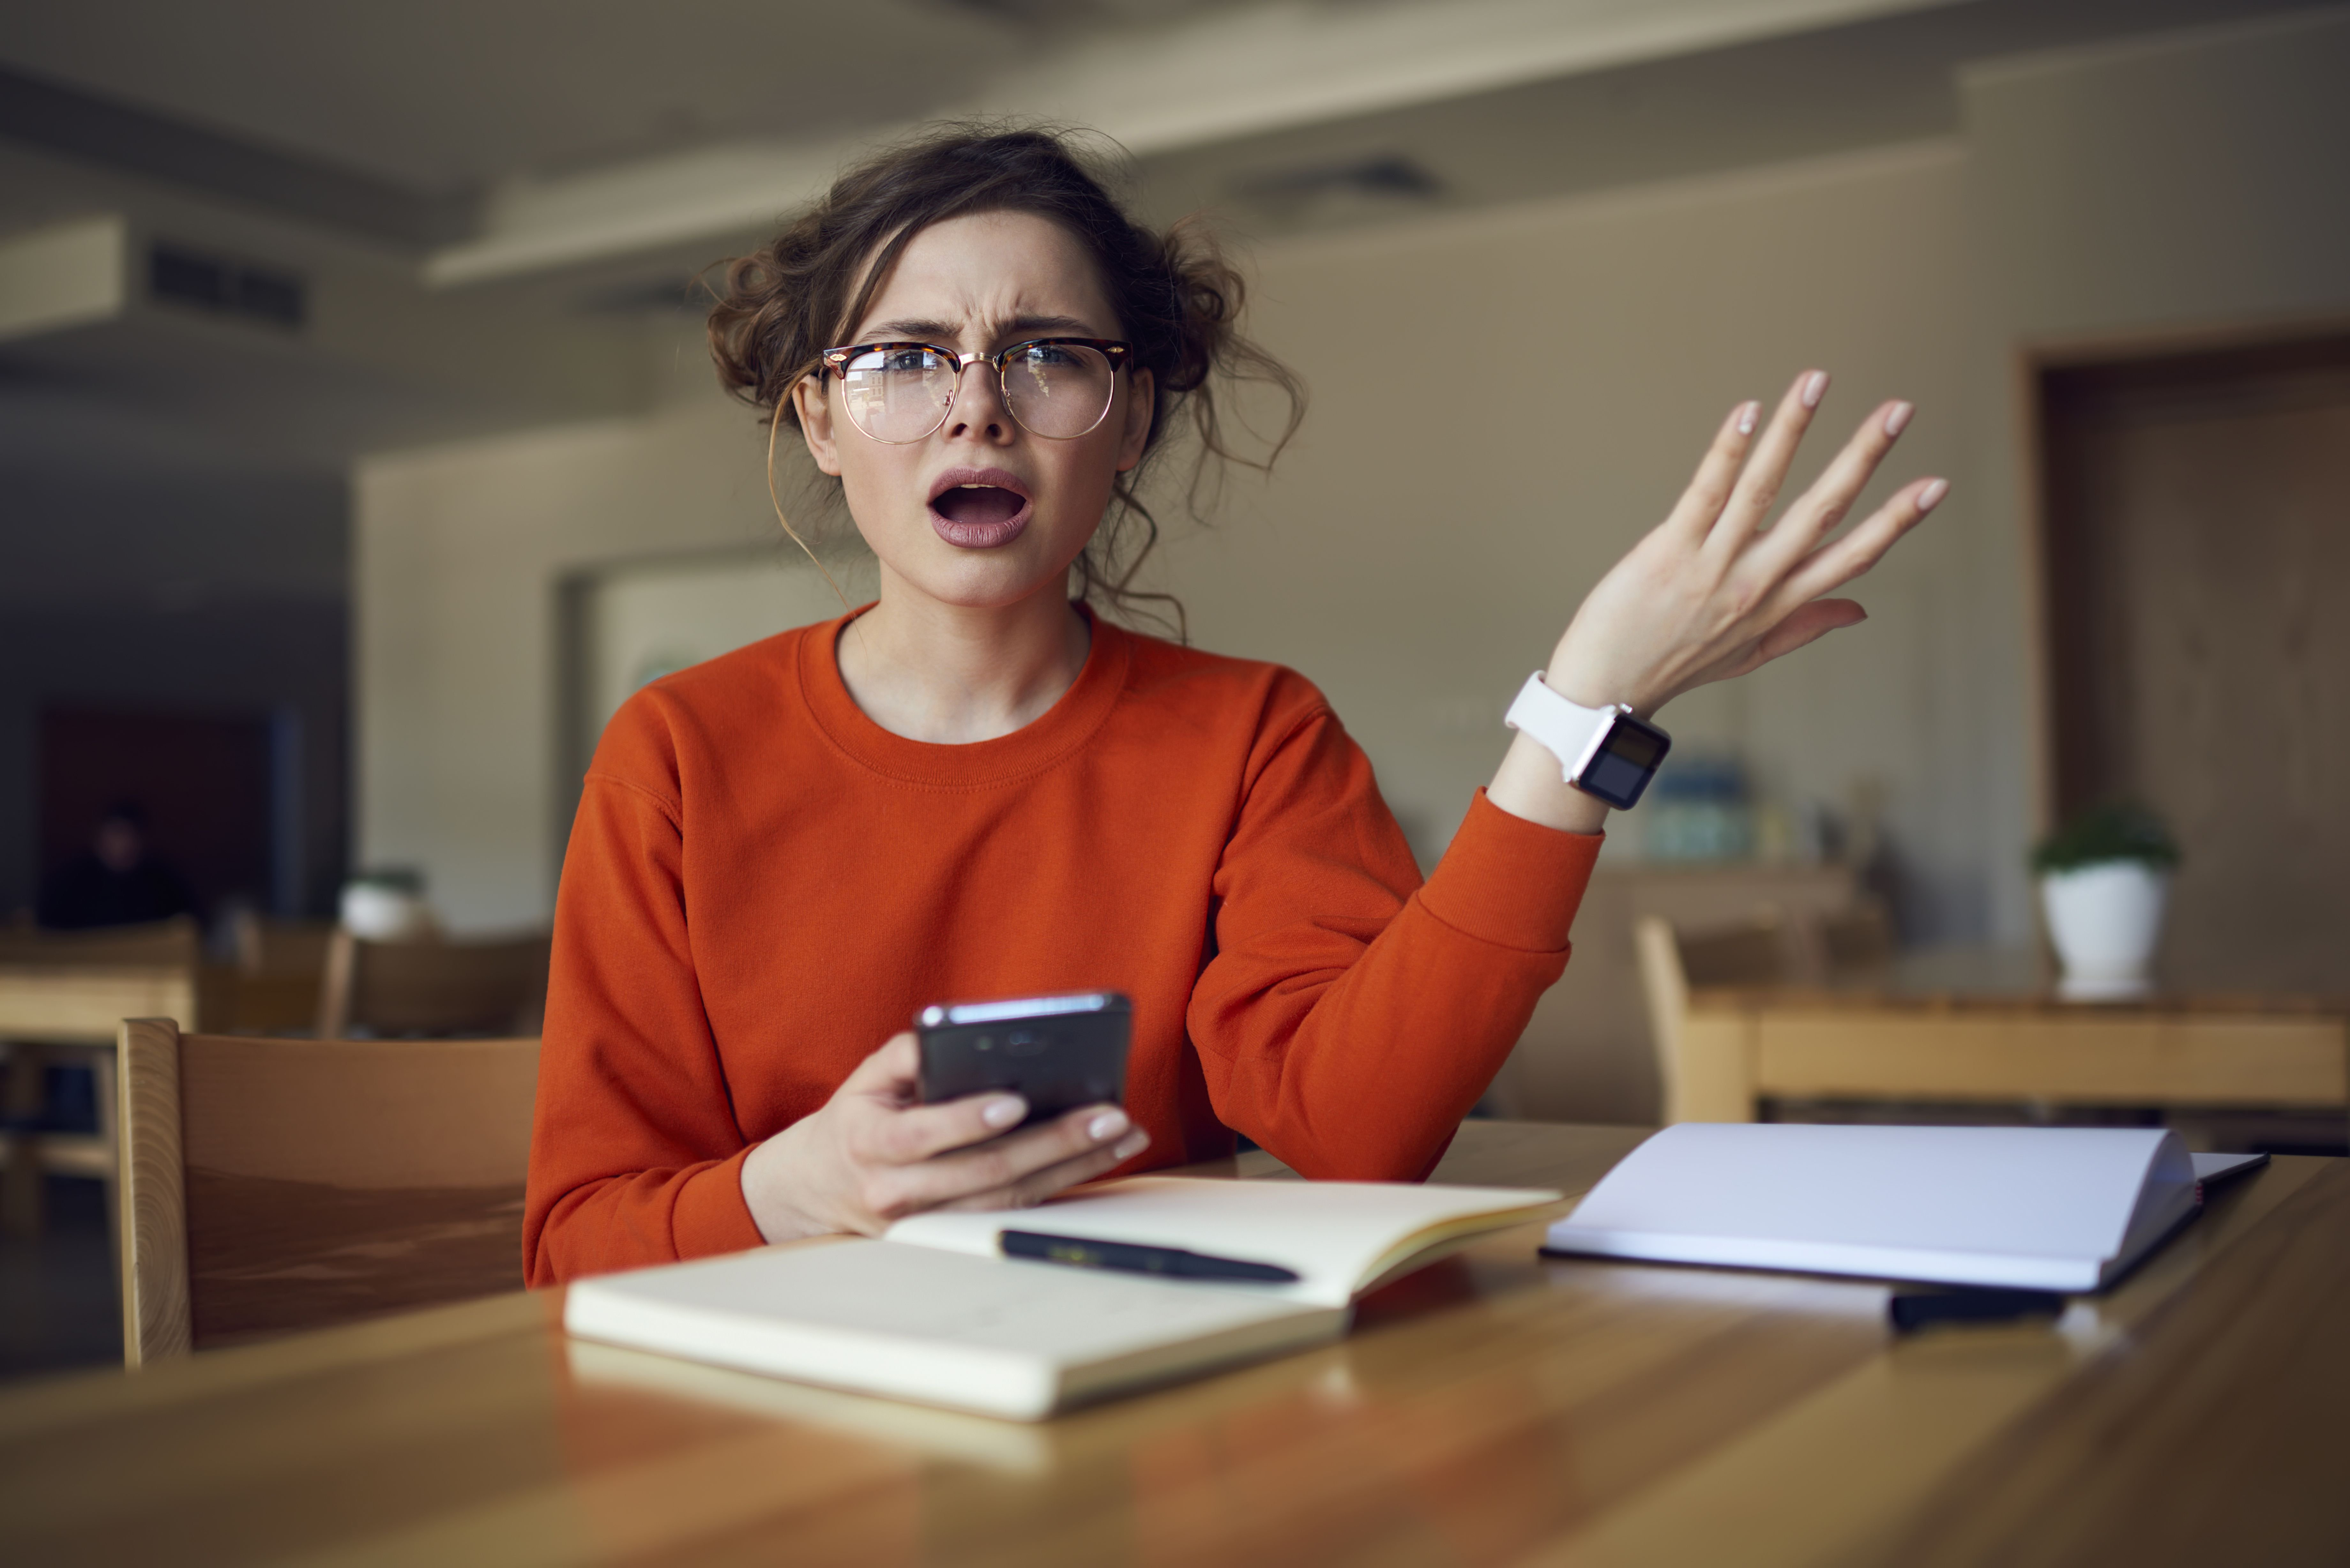 A woman looks shocked while holding her phone. | Source: Shutterstock